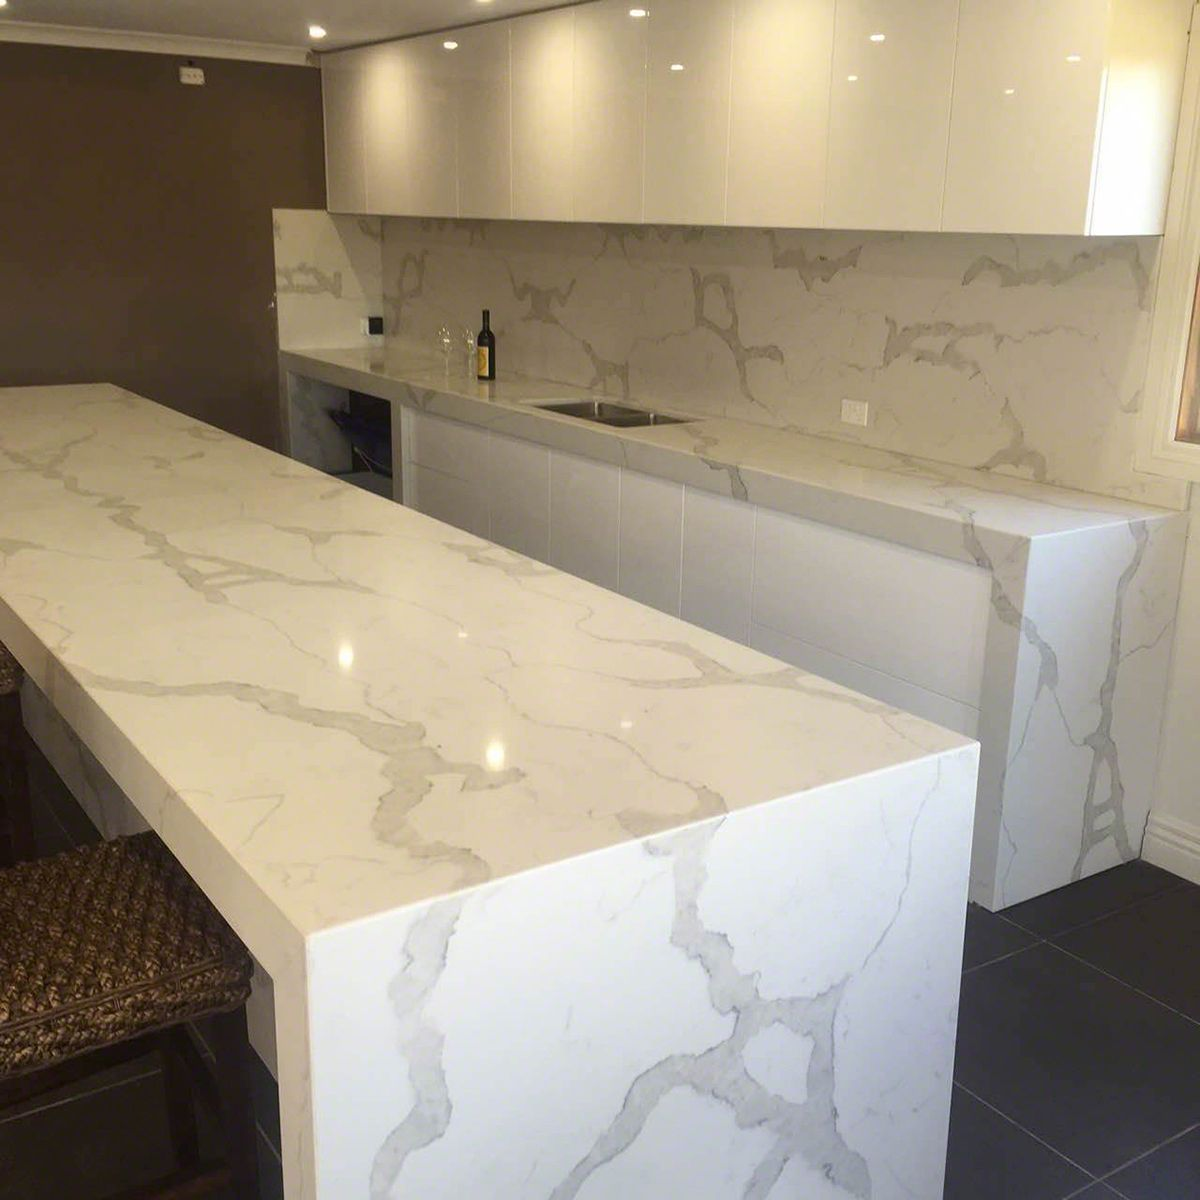 Calacatta Marble Kitchen: Calacatta Classique™ Stuns With Its Gorgeous White Marble